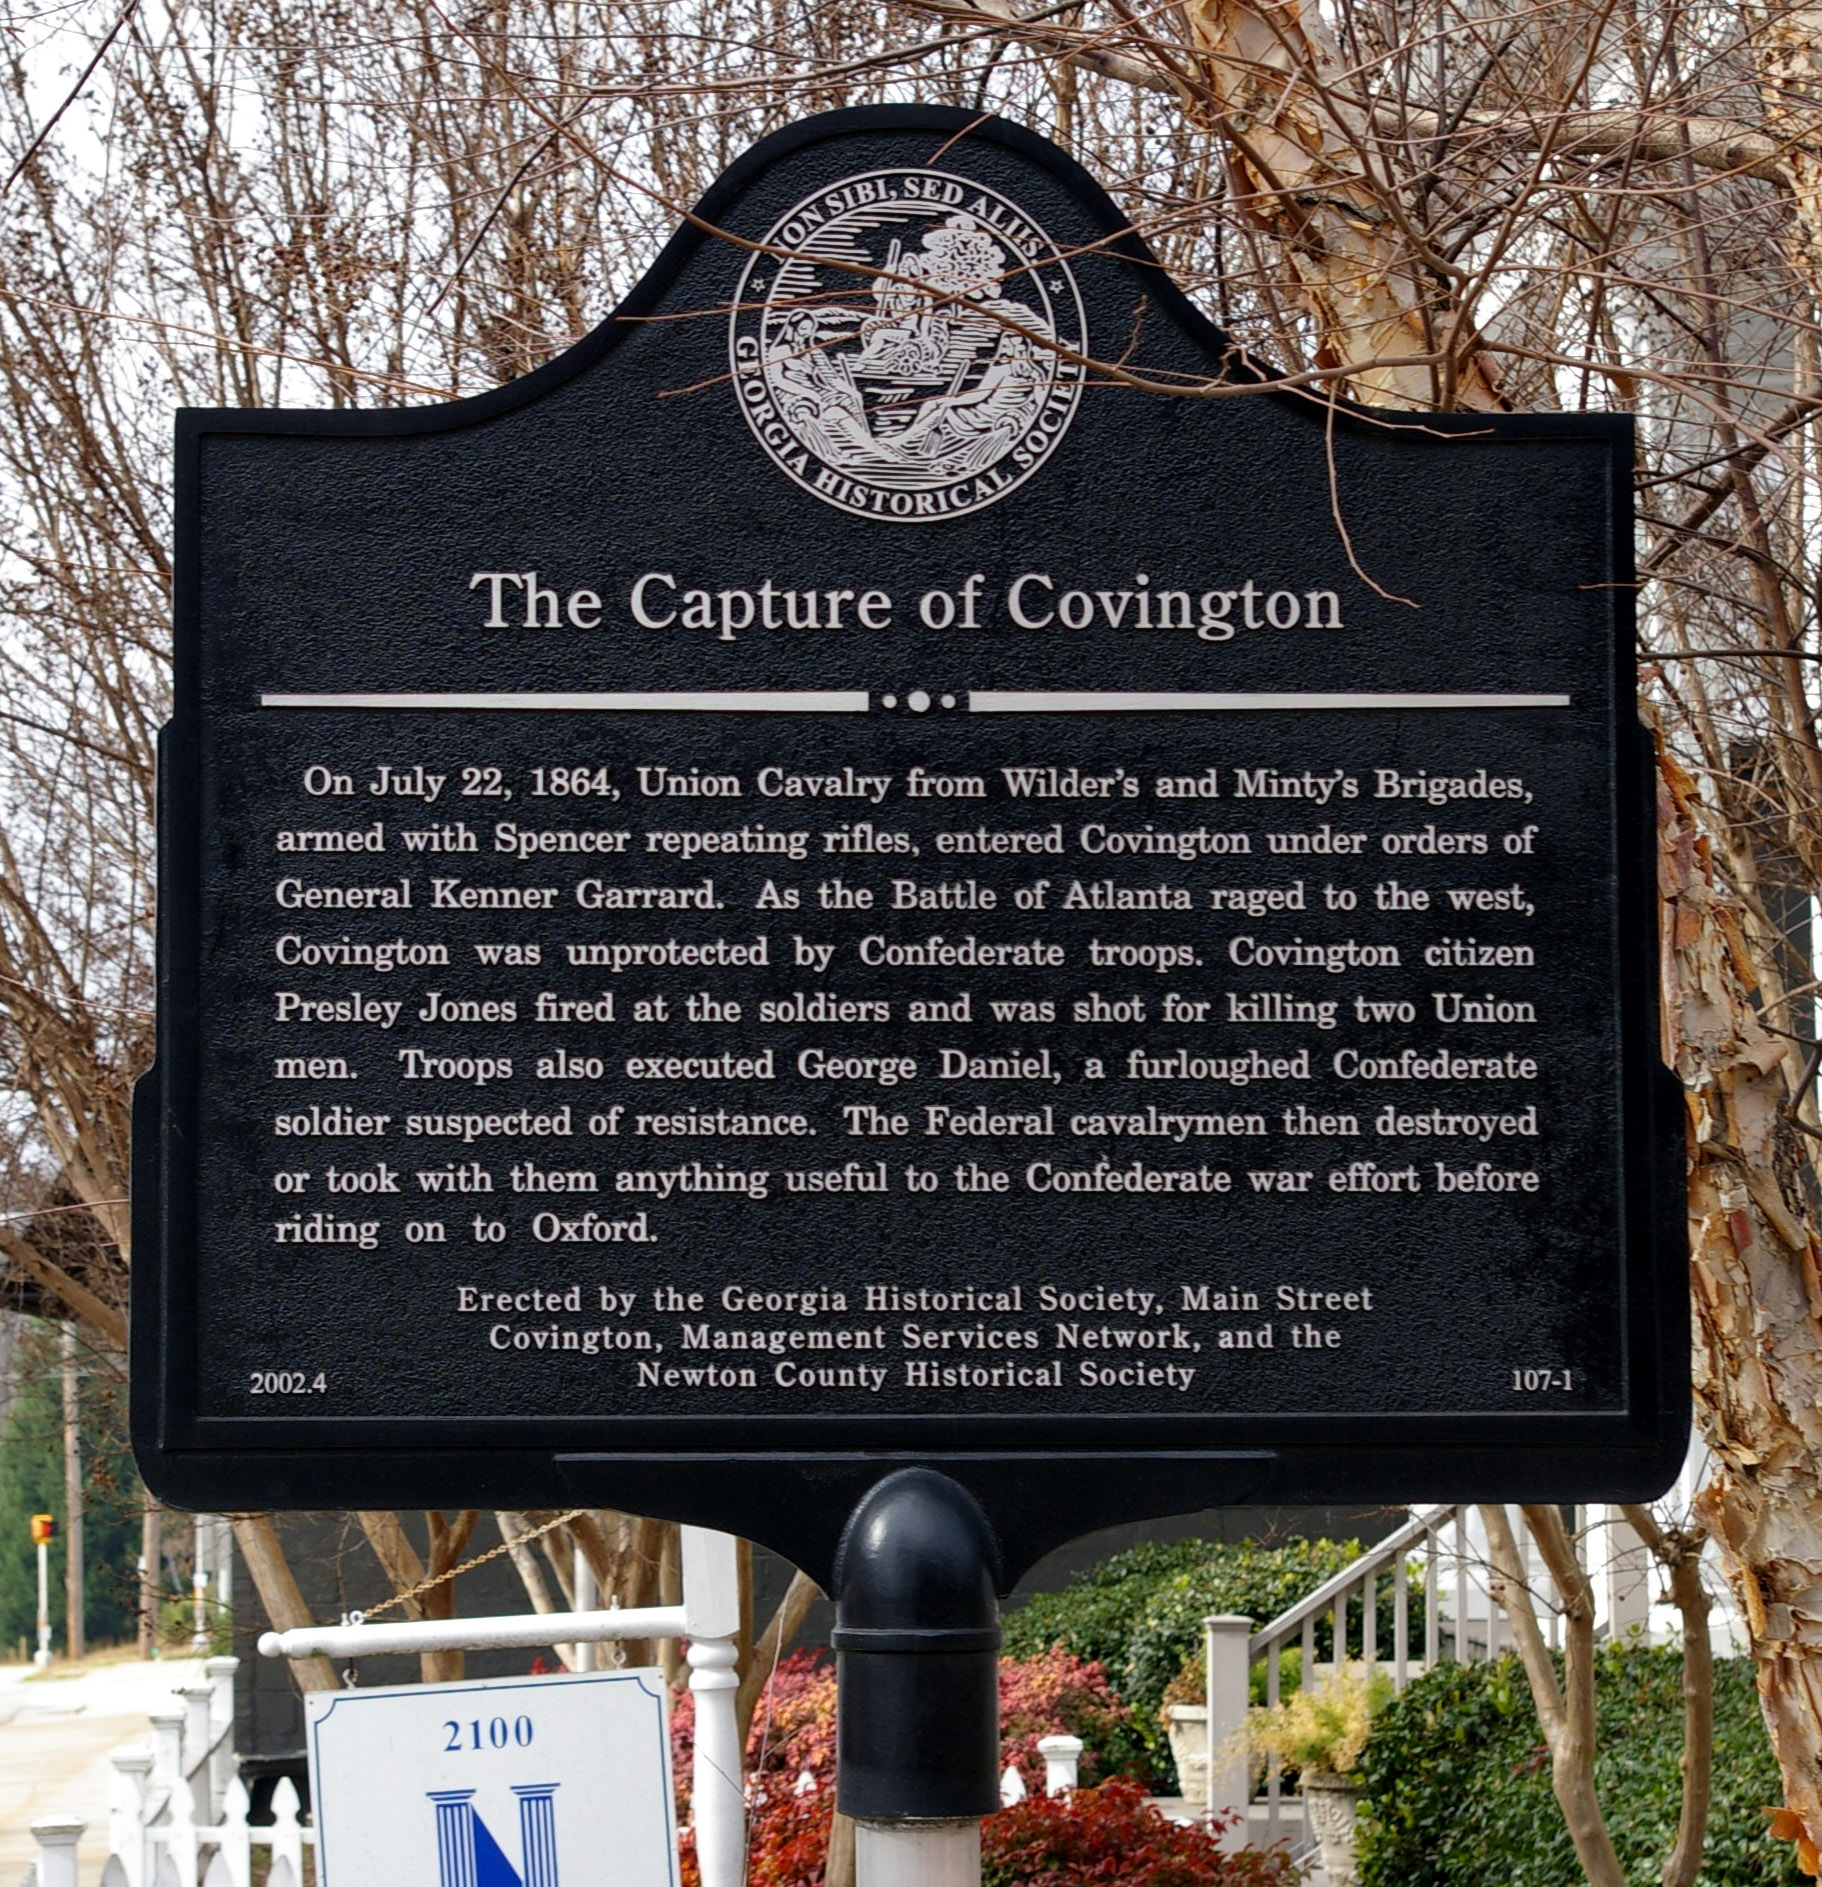 The Capture of Covington Marker